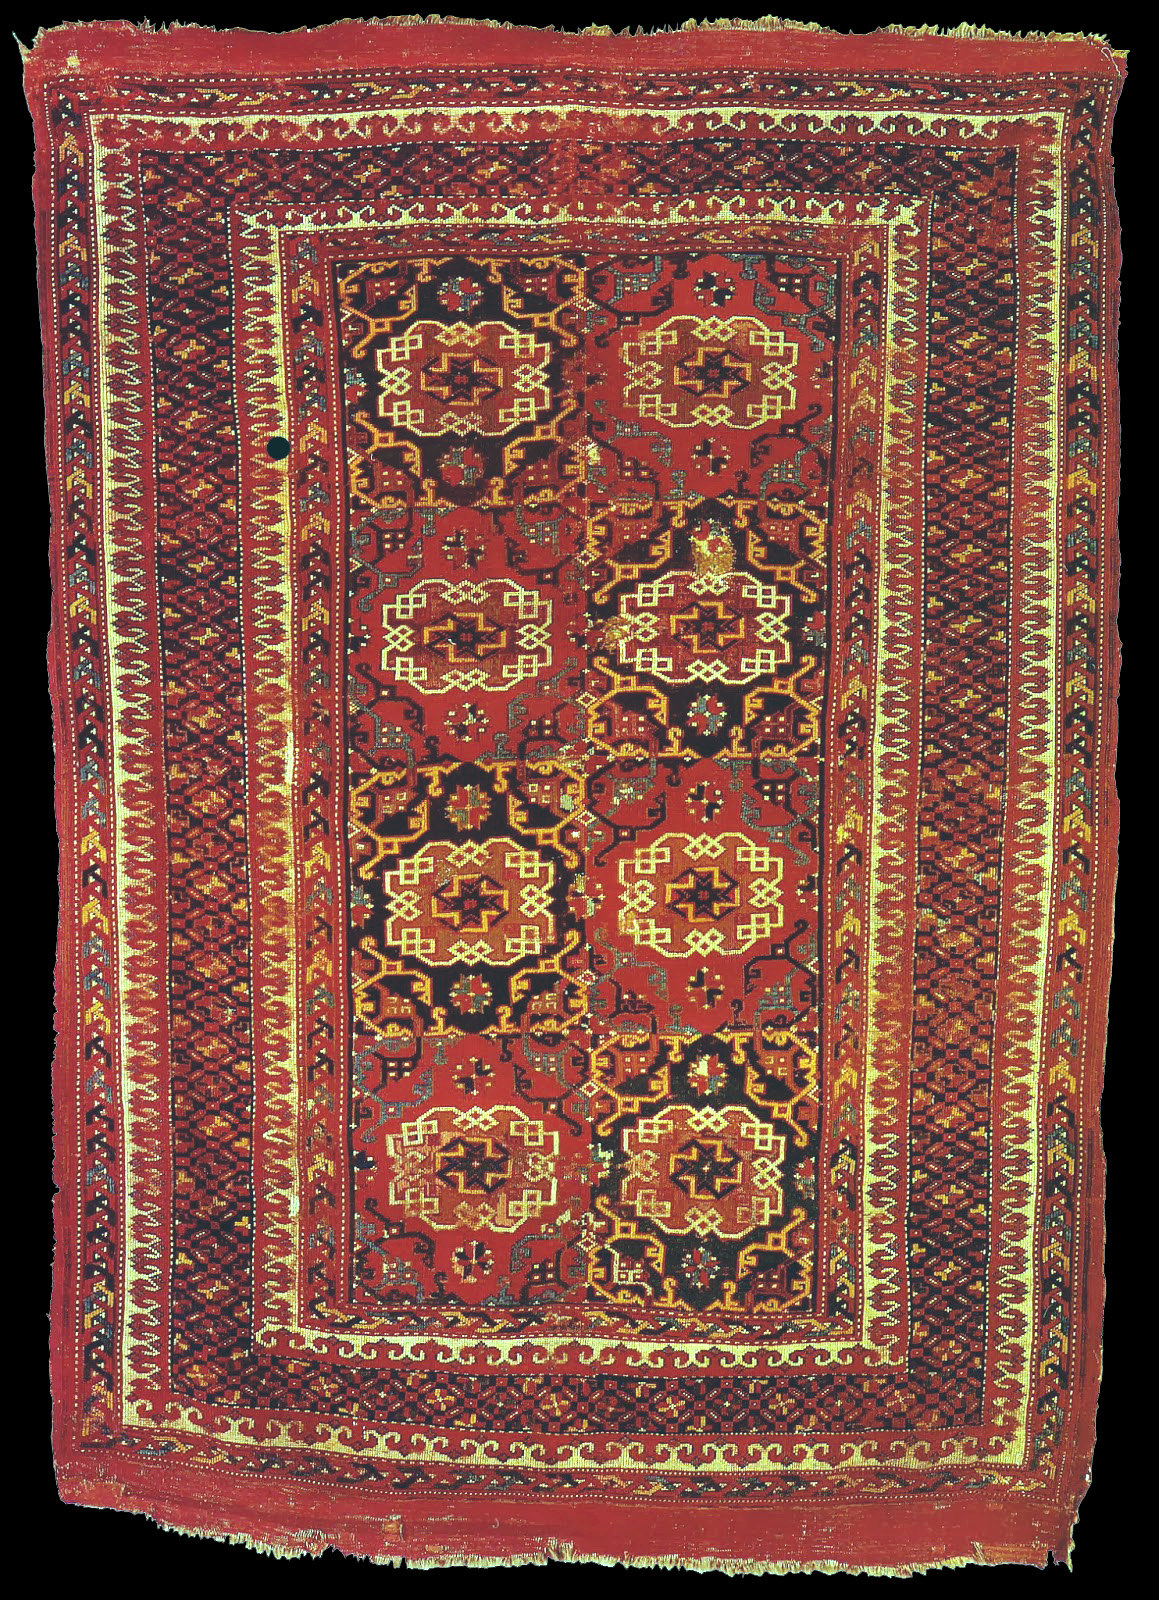 A Turkish Rug With The Small Quot Holbein Quot Pattern 16th